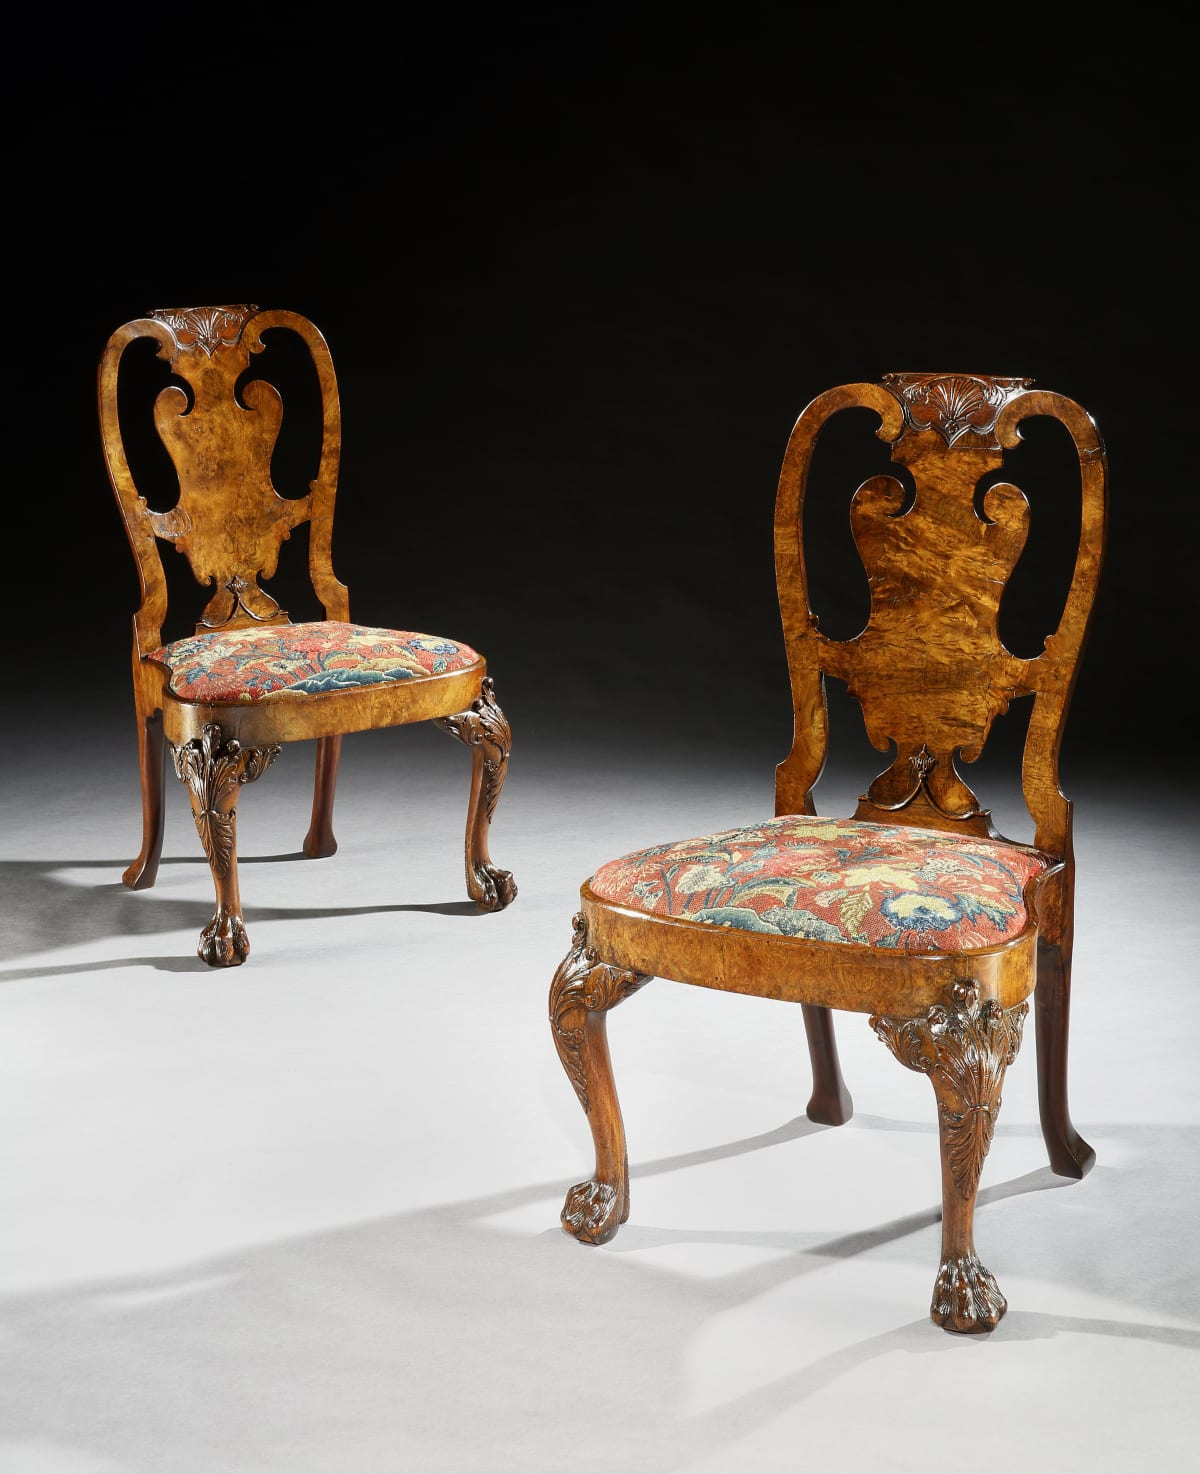 THE HEYDON HALL CHAIRS. ATTRIBUTED TO GILES GRENDY, English, circa 1740